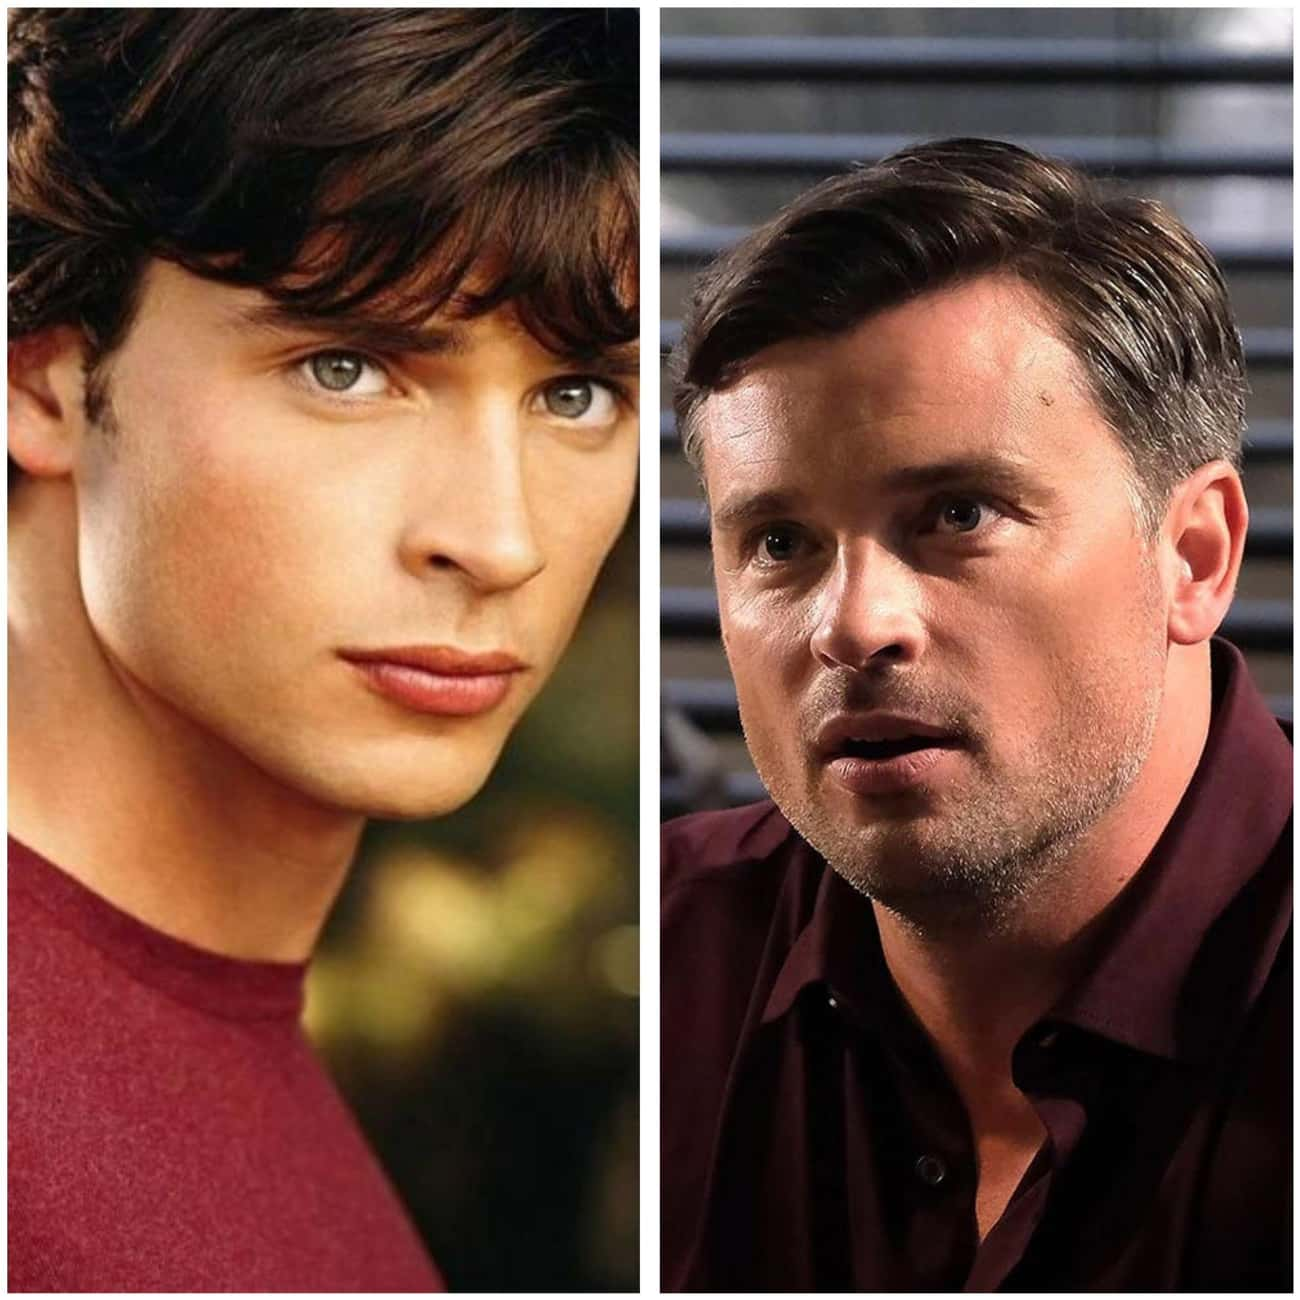 Tom Welling Joined The Cast Of is listed (or ranked) 1 on the list The Cast Of 'Smallville' - Where Are They Now?